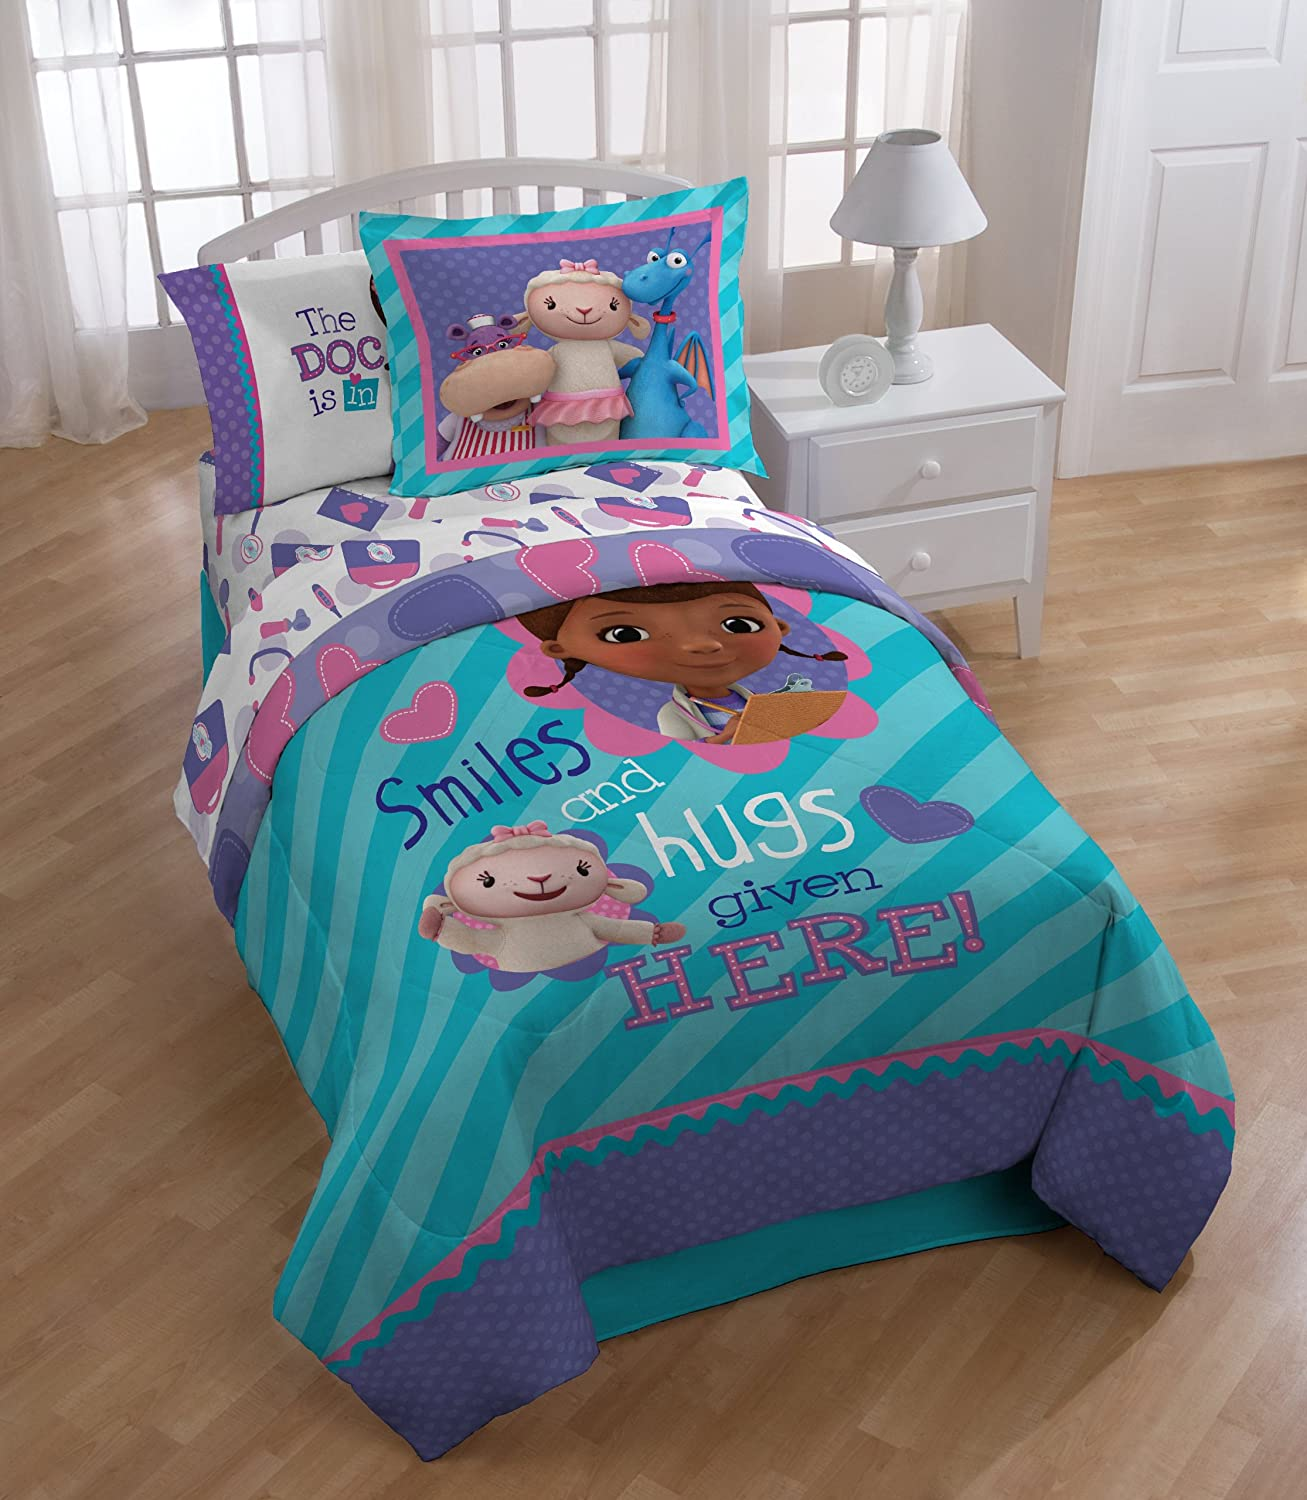 doc mcstuffins bedroom set doc mcstuffin reversible comforter set bedding 15192